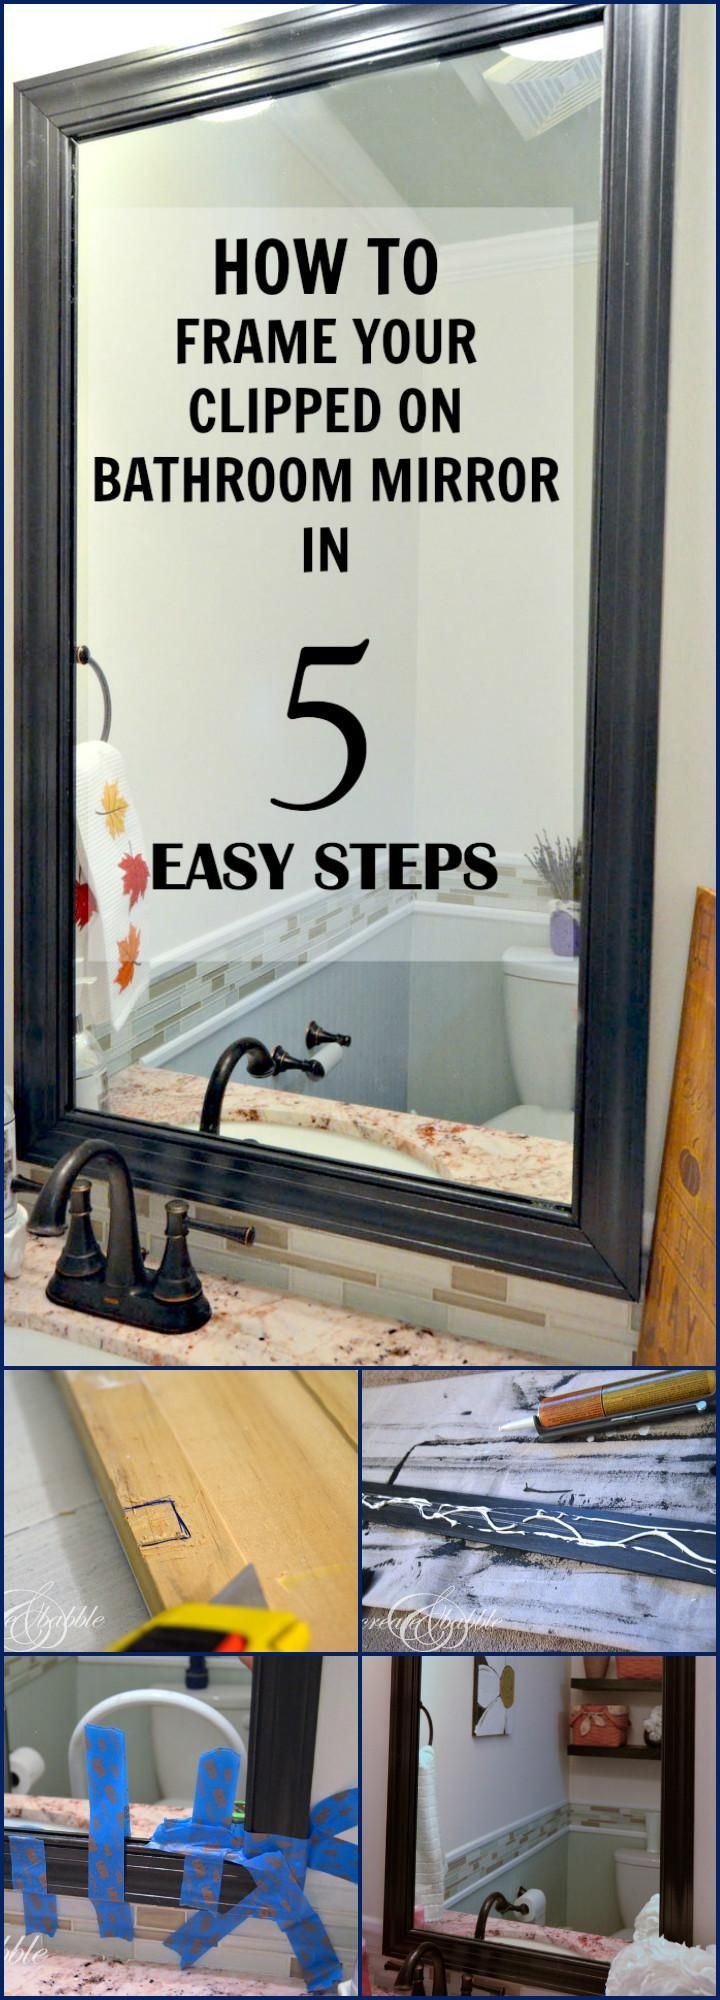 50+ DIY Bathroom Projects to Remodel Step by Step - Page 2 of 6 ...